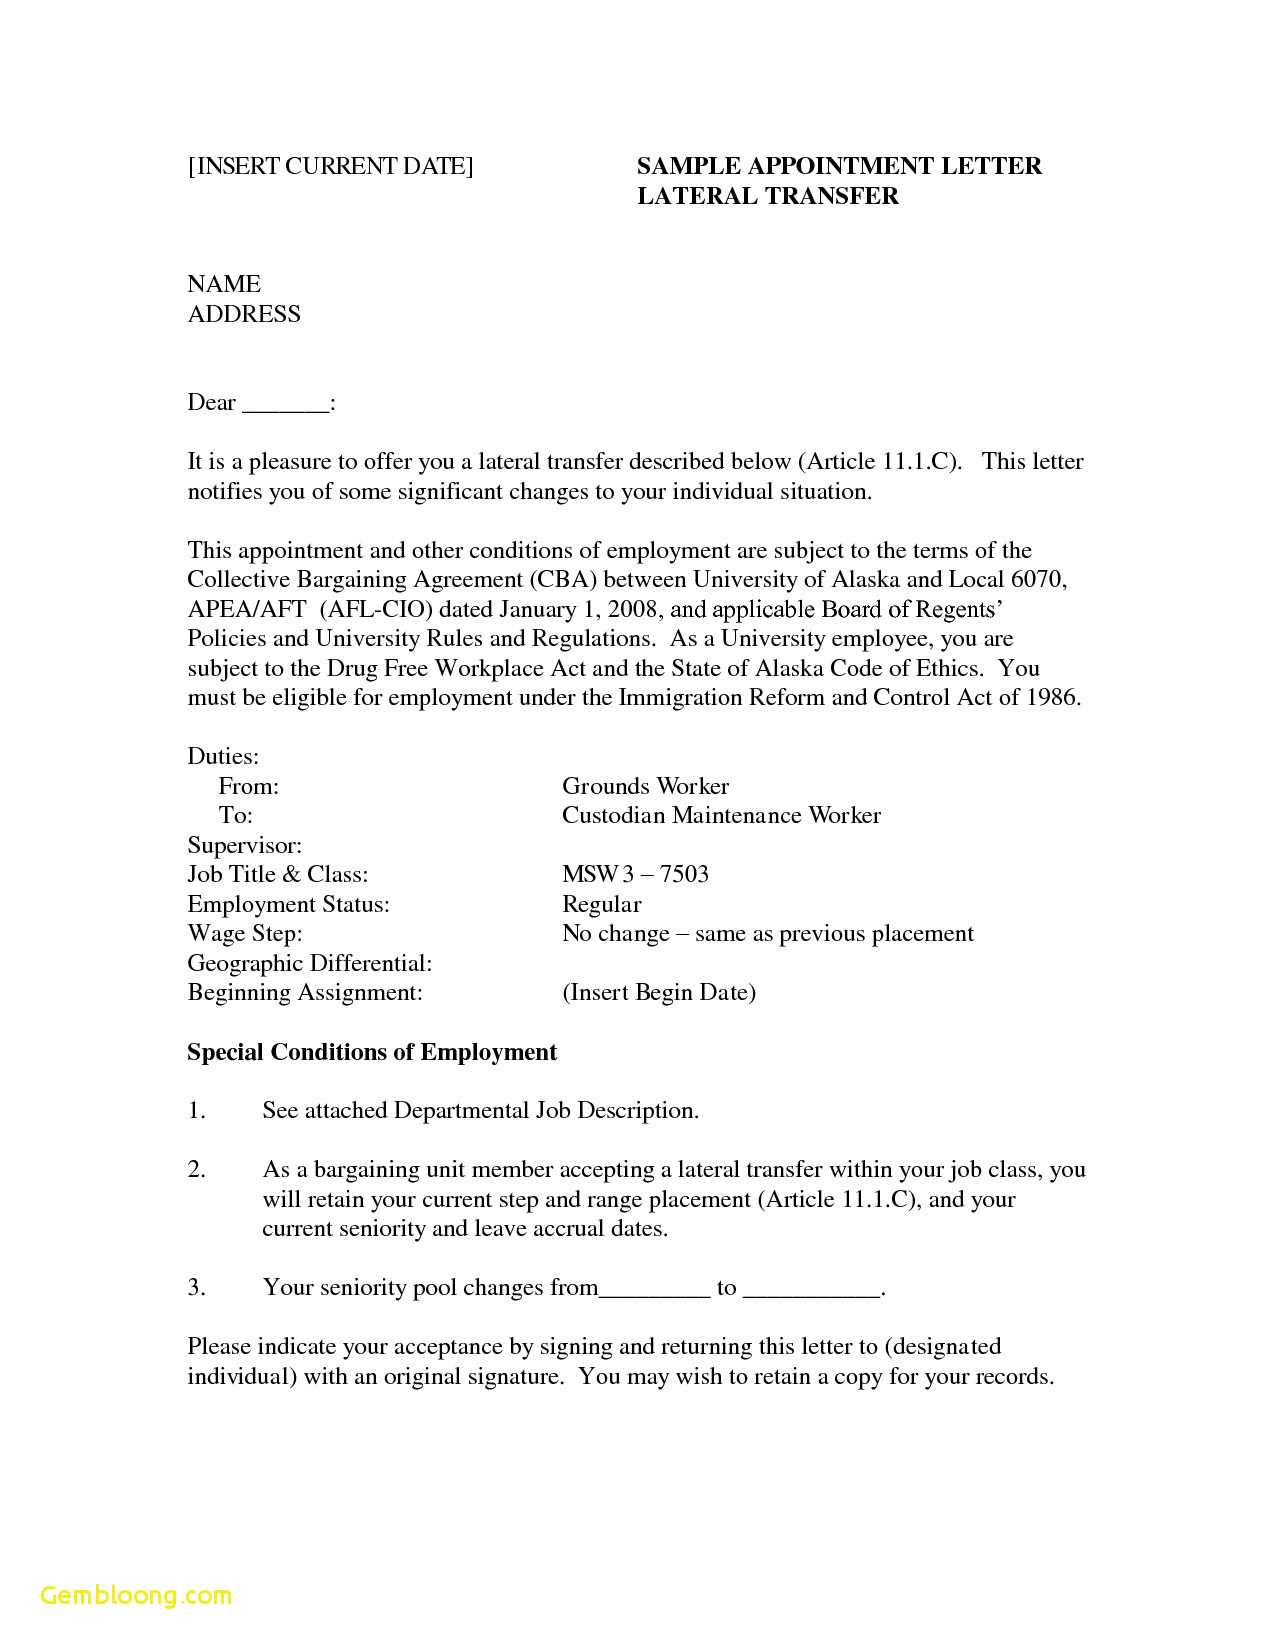 it cover letter template word example-Resume with Template Download now Sample Resume In Word format Cover Letter Template Word 2014 1-f